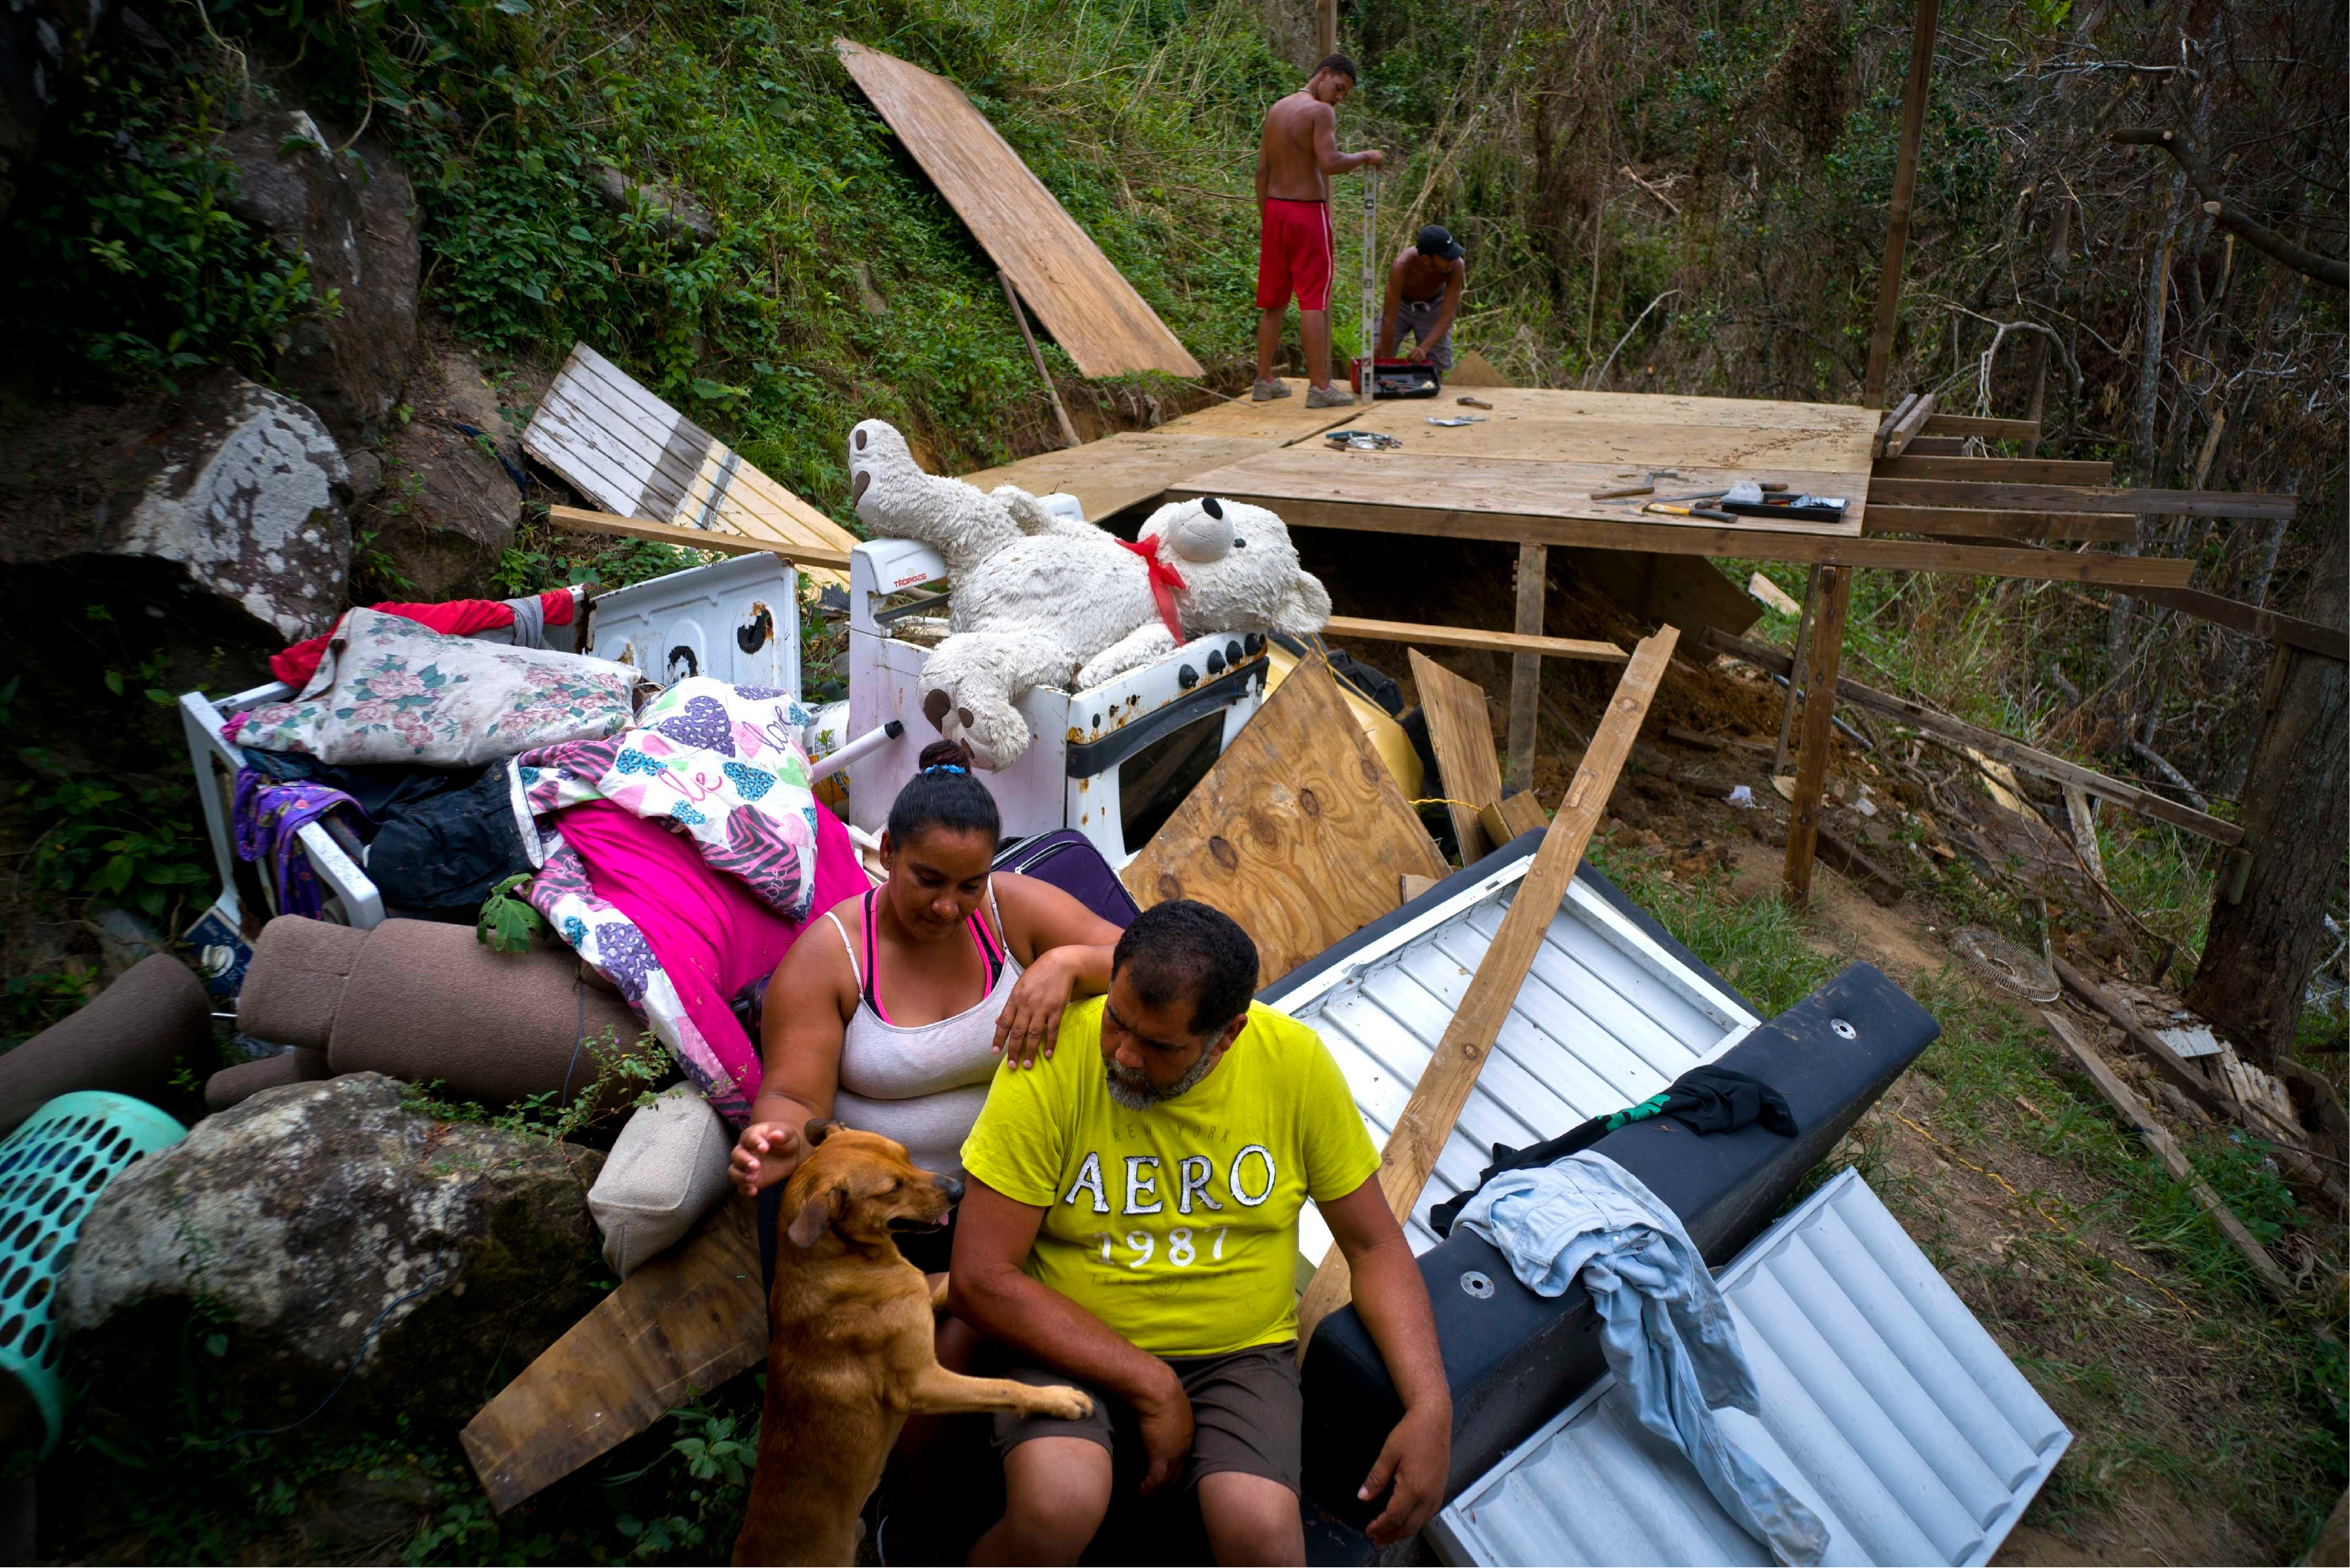 "CORRECTS FROM SAN LAZARO TO SAN LORENZO AND MORAVIS TO MOROVIS - Yadira Sortre and William Fontan Quintero pose to what is left of their belongings, destroyed by Hurricane Maria while their children build a room to protect themselves from the elements, in the San Lorenzo neighborhood of Morovis, Puerto Rico, Saturday, Sept. 30, 2017.  ""We lost everything,"" Fontan said. They have three children, one lives in Chicago and two live with them in Puerto Rico. (AP Photo/Ramon Espinosa)"